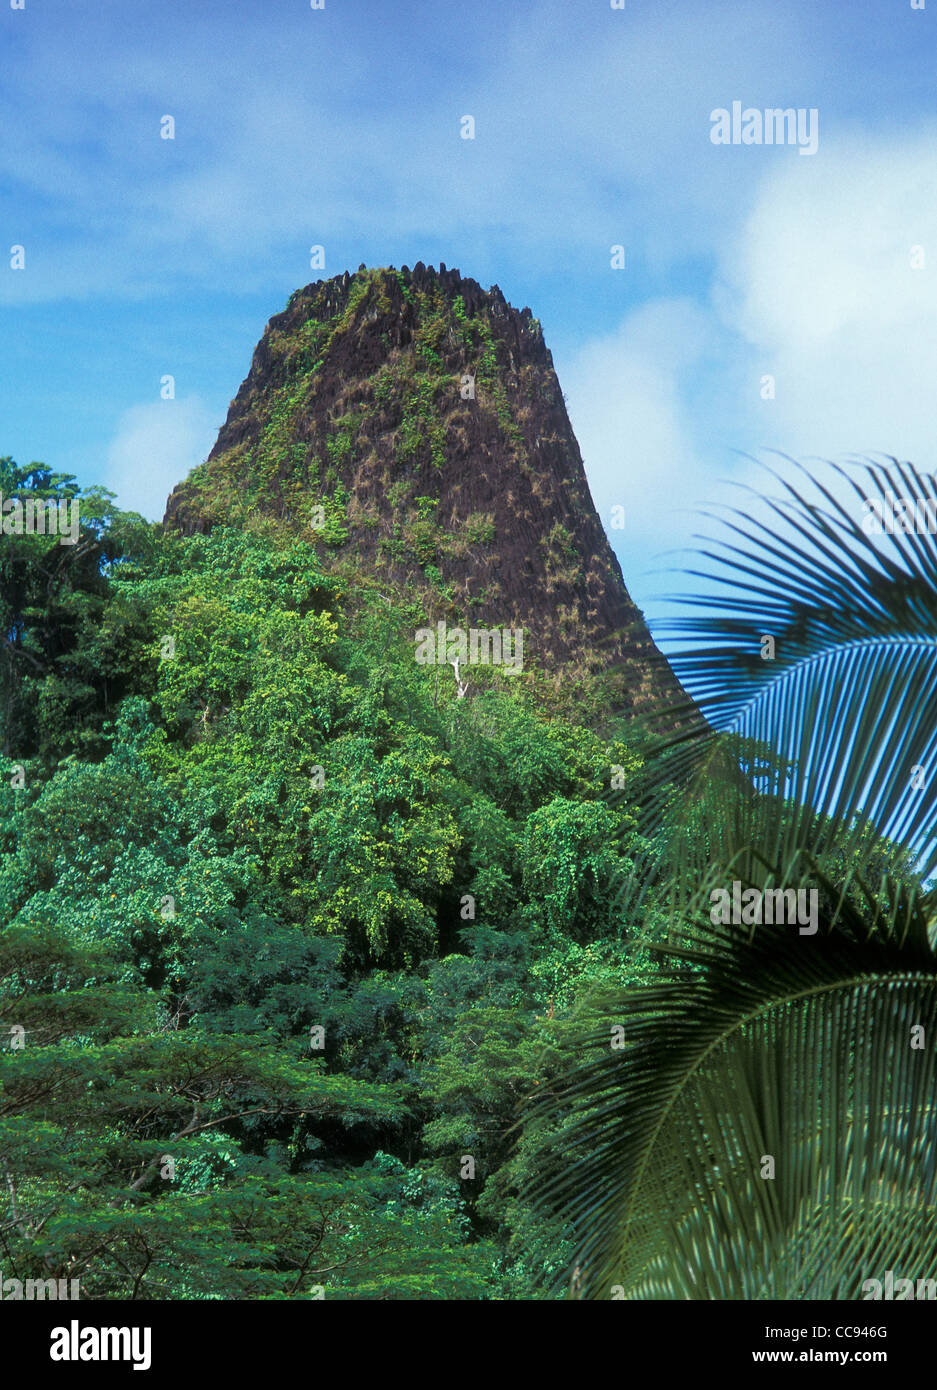 Pwusehn Malek (also known as Chickenshit Mountain), a volcanic plug; Pohnpei, Micronesia. - Stock Image